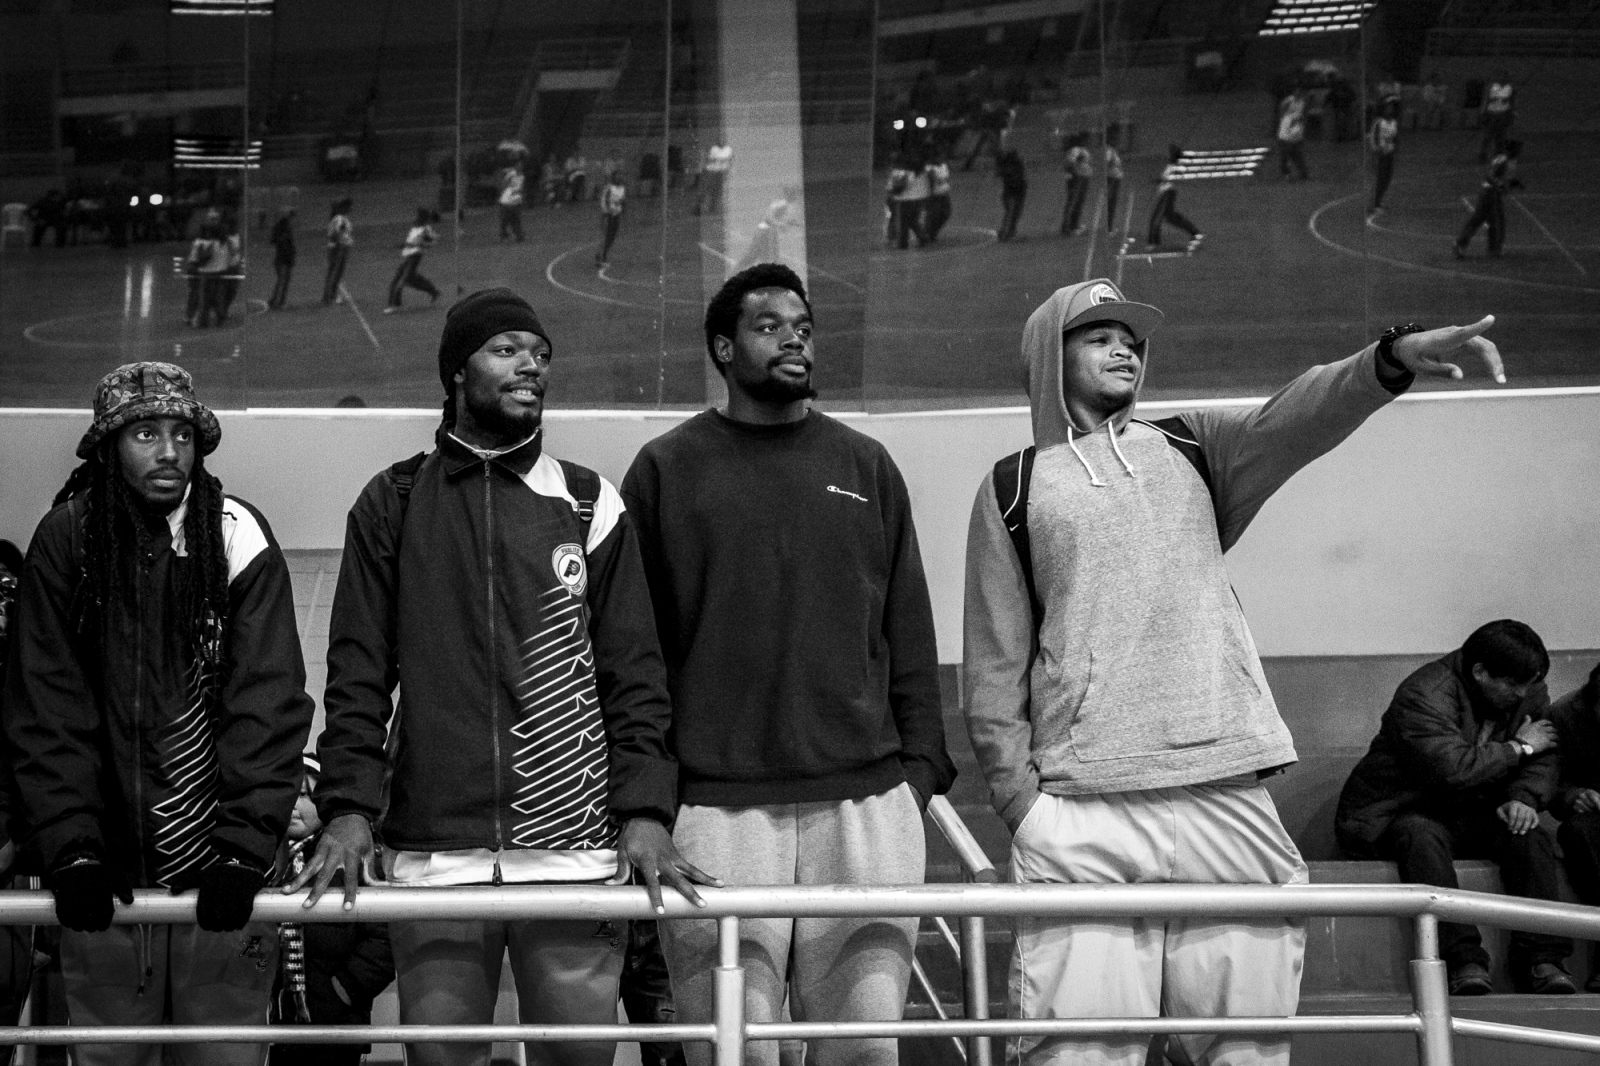 Domonick Steverson, Travis Dupree, DeQuan Massey and Rory Miller watch a female players before a game. Pueblito Nets will play after that against the Nusevic team, which add to their squad also three Americans.